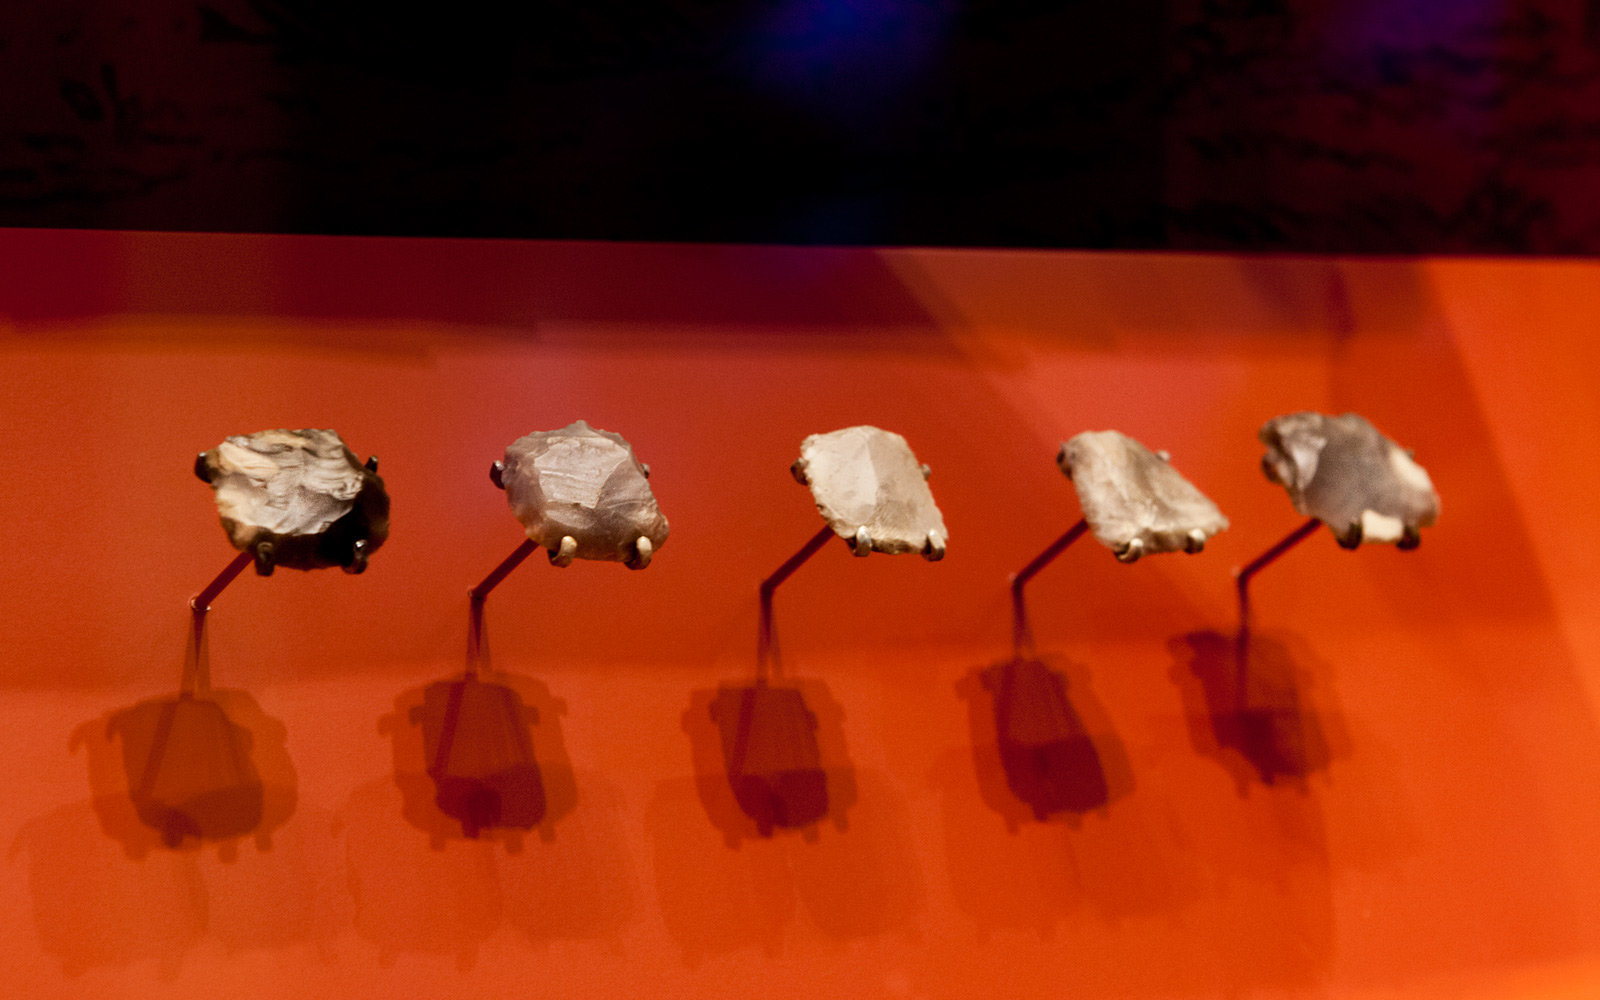 Flints from Shot Heard Round the World, Museum of the American Revolution, Philadelphia, Pennsylvania